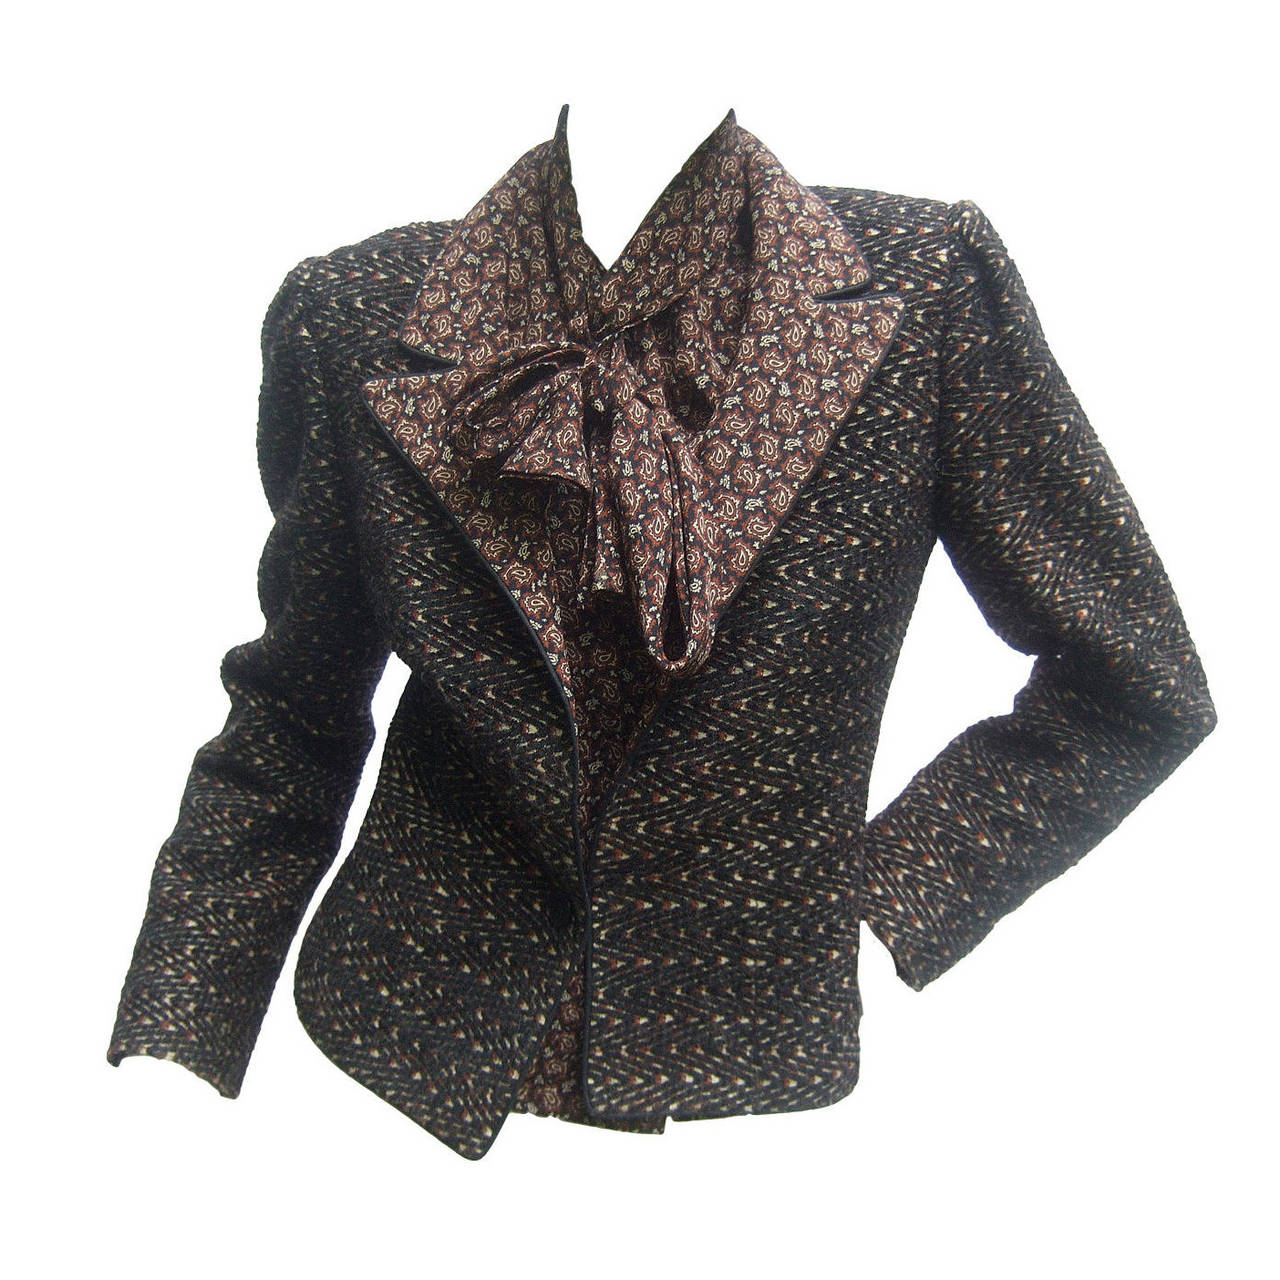 Lanvin Couture Paris Wool Jacket & Paisley Blouse Ensemble c 1980s 1